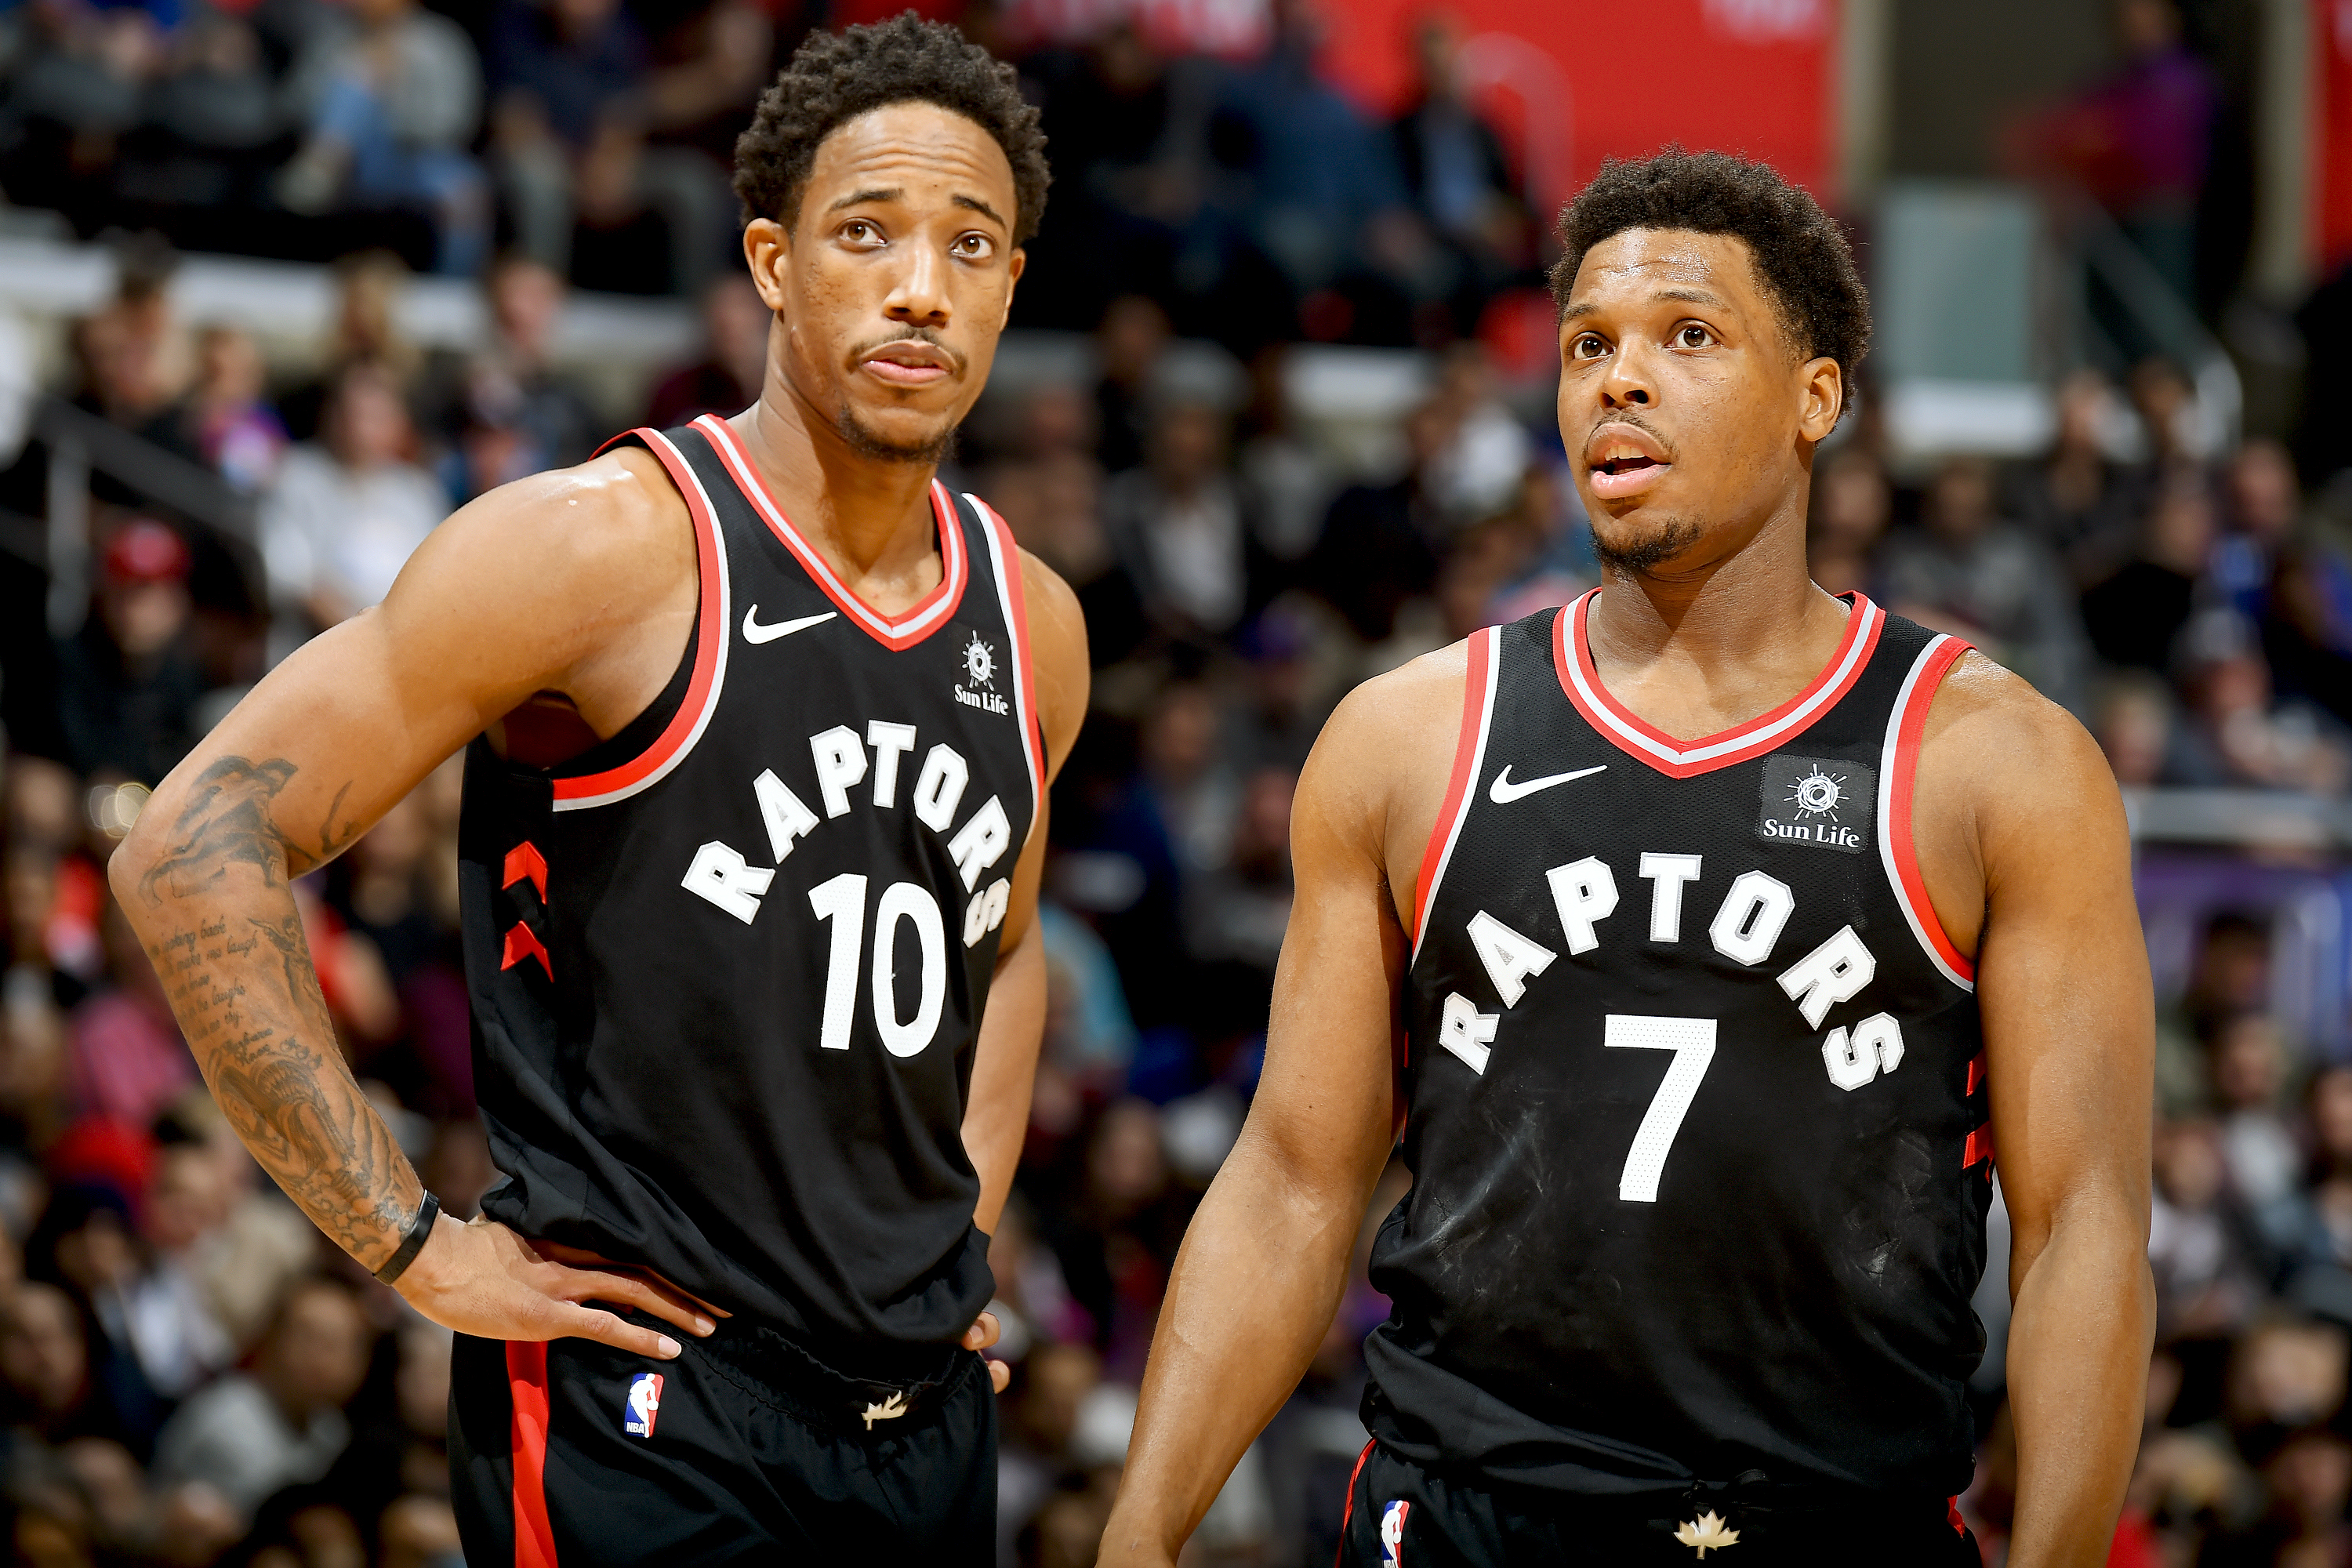 Week 22 Power Rankings  Toronto Raptors rise to No. 1 with big win over  Houston Rockets  506366767